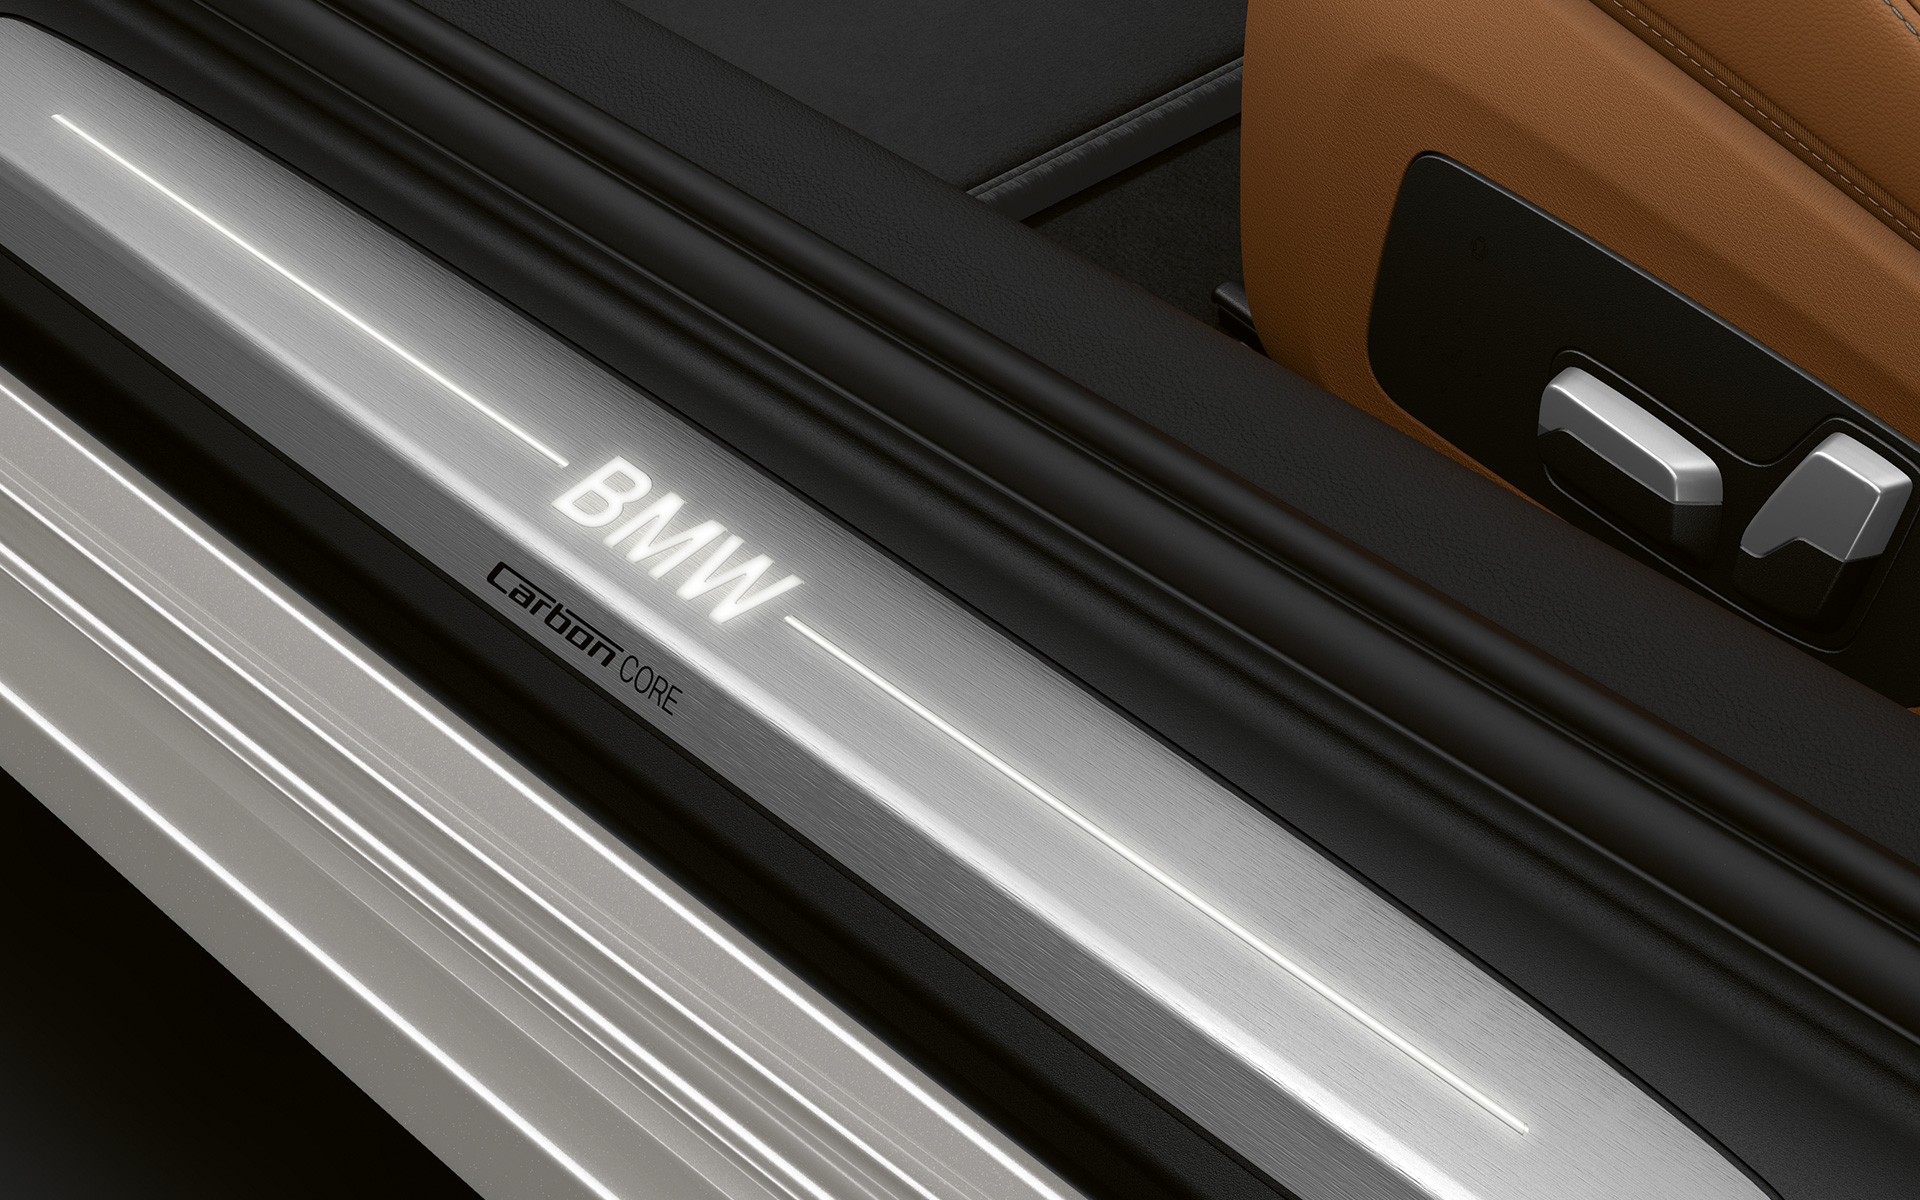 Close-up of the door sill of the BMW 8 Series Coupé with BMW logo.